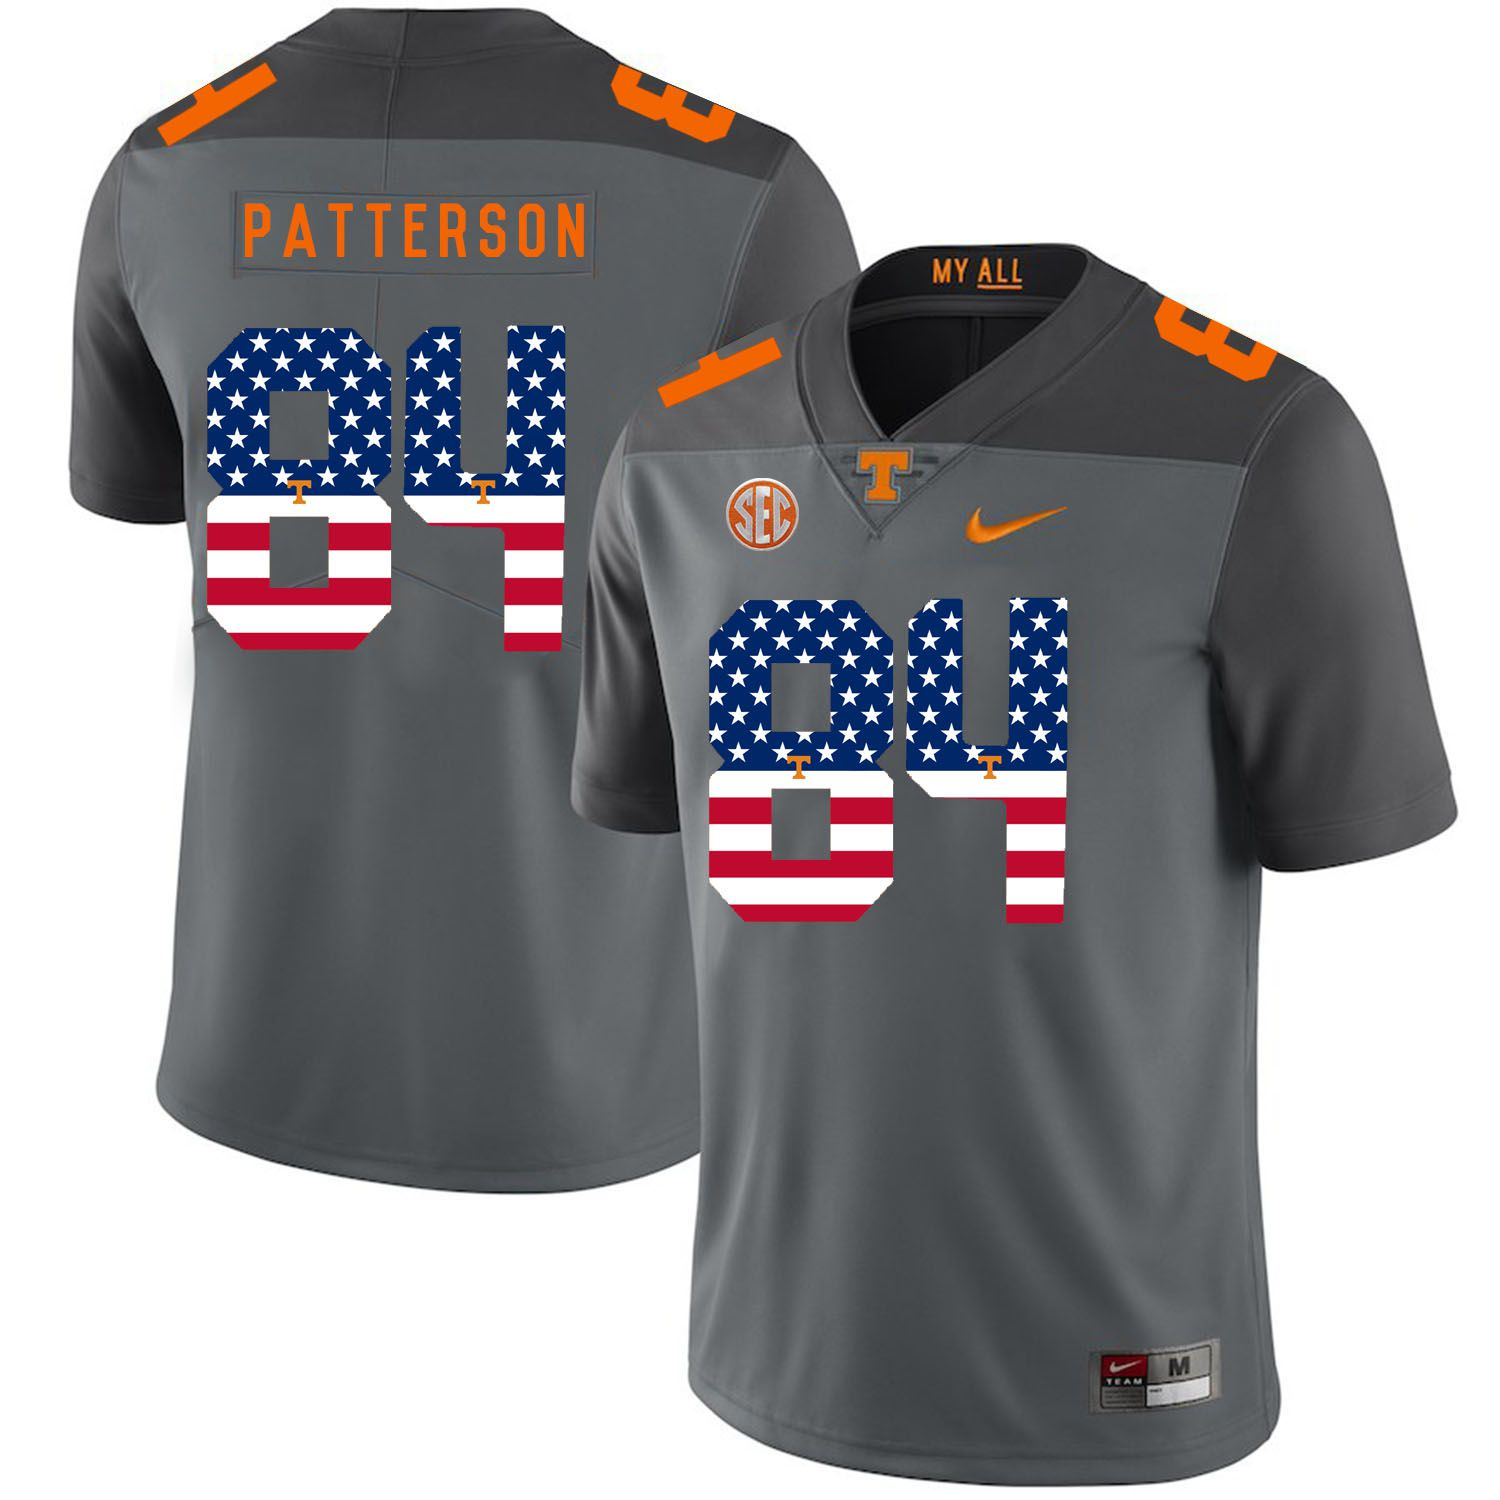 Men Tennessee Volunteers 84 Patterson Grey Flag Customized NCAA Jerseys